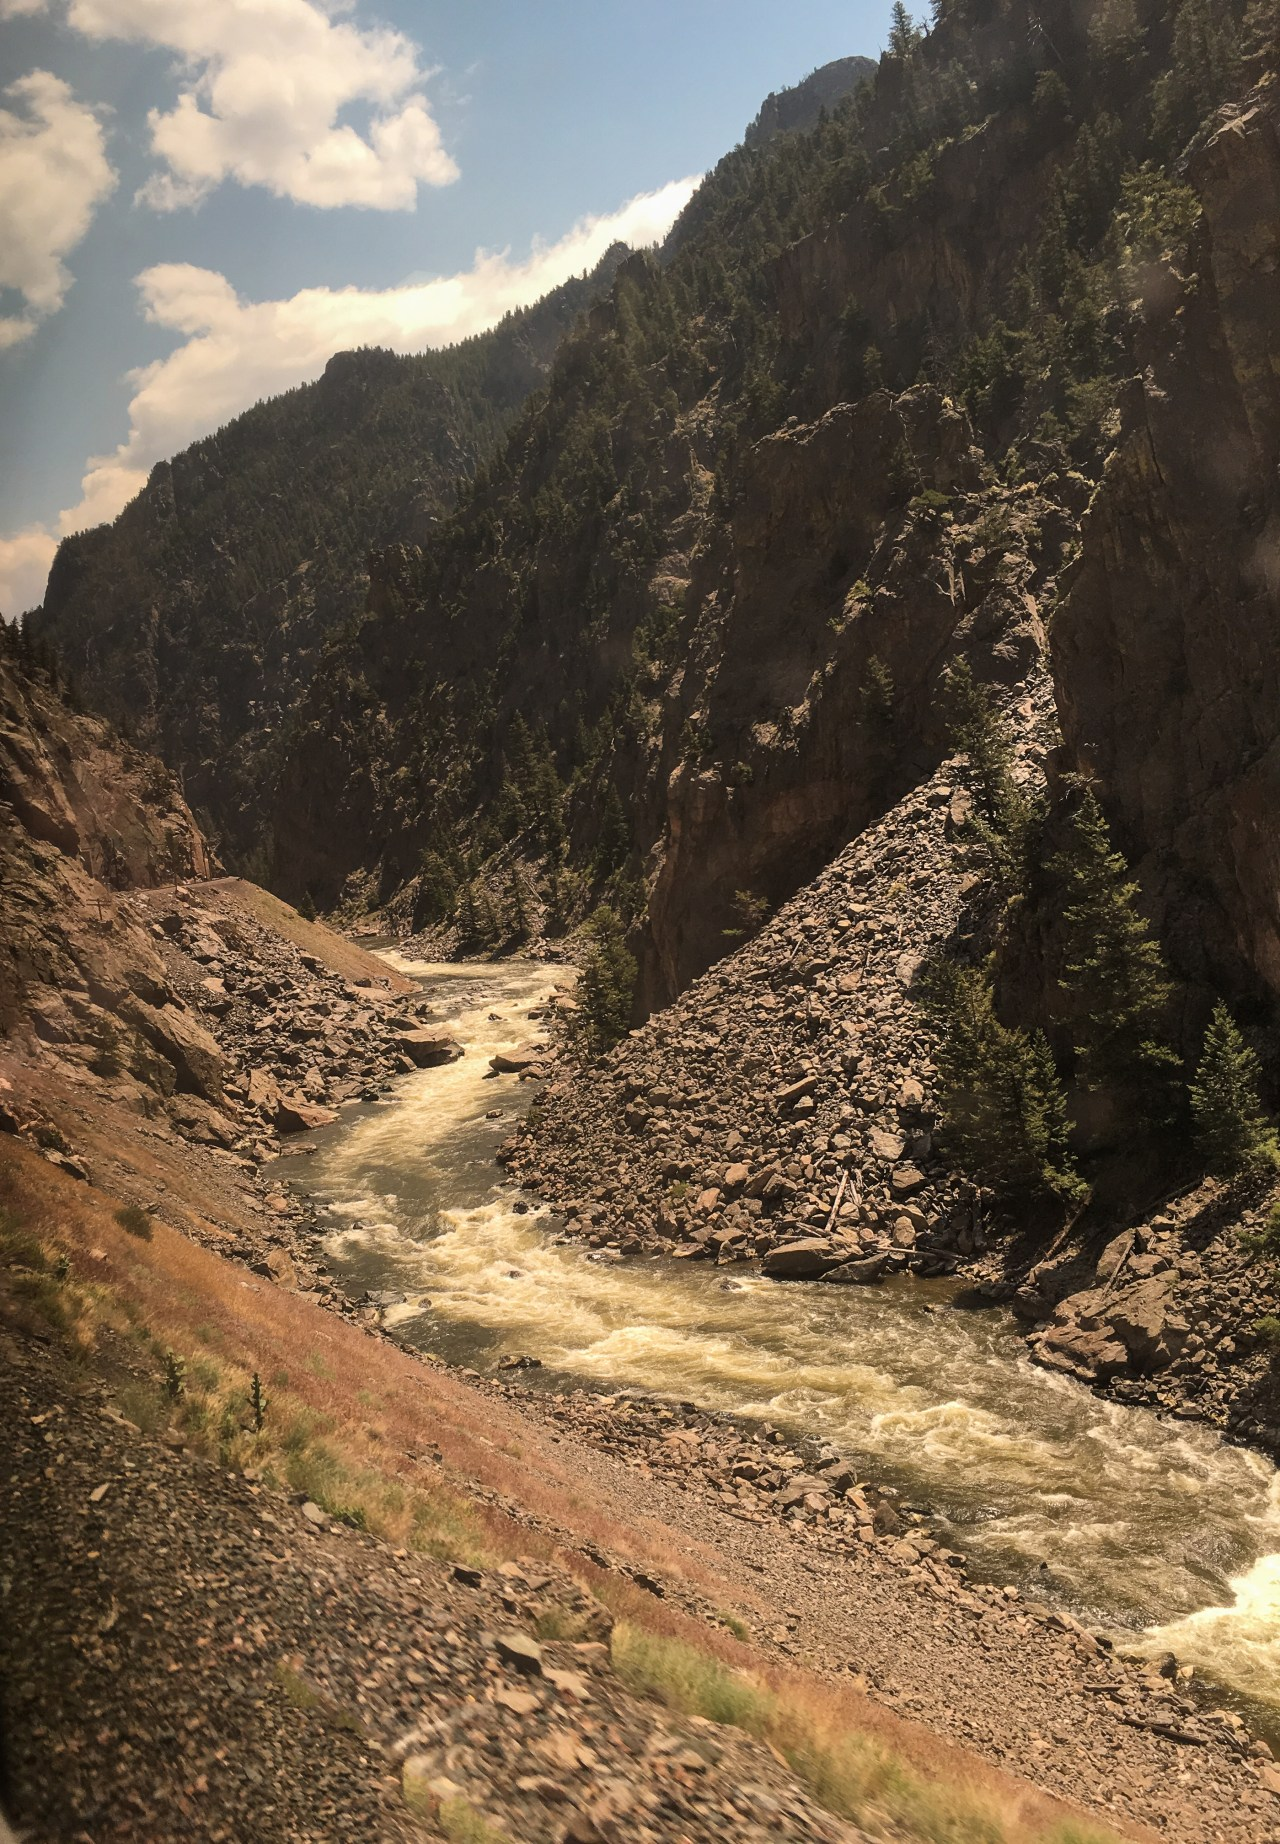 The Colorado River in its namesake state.